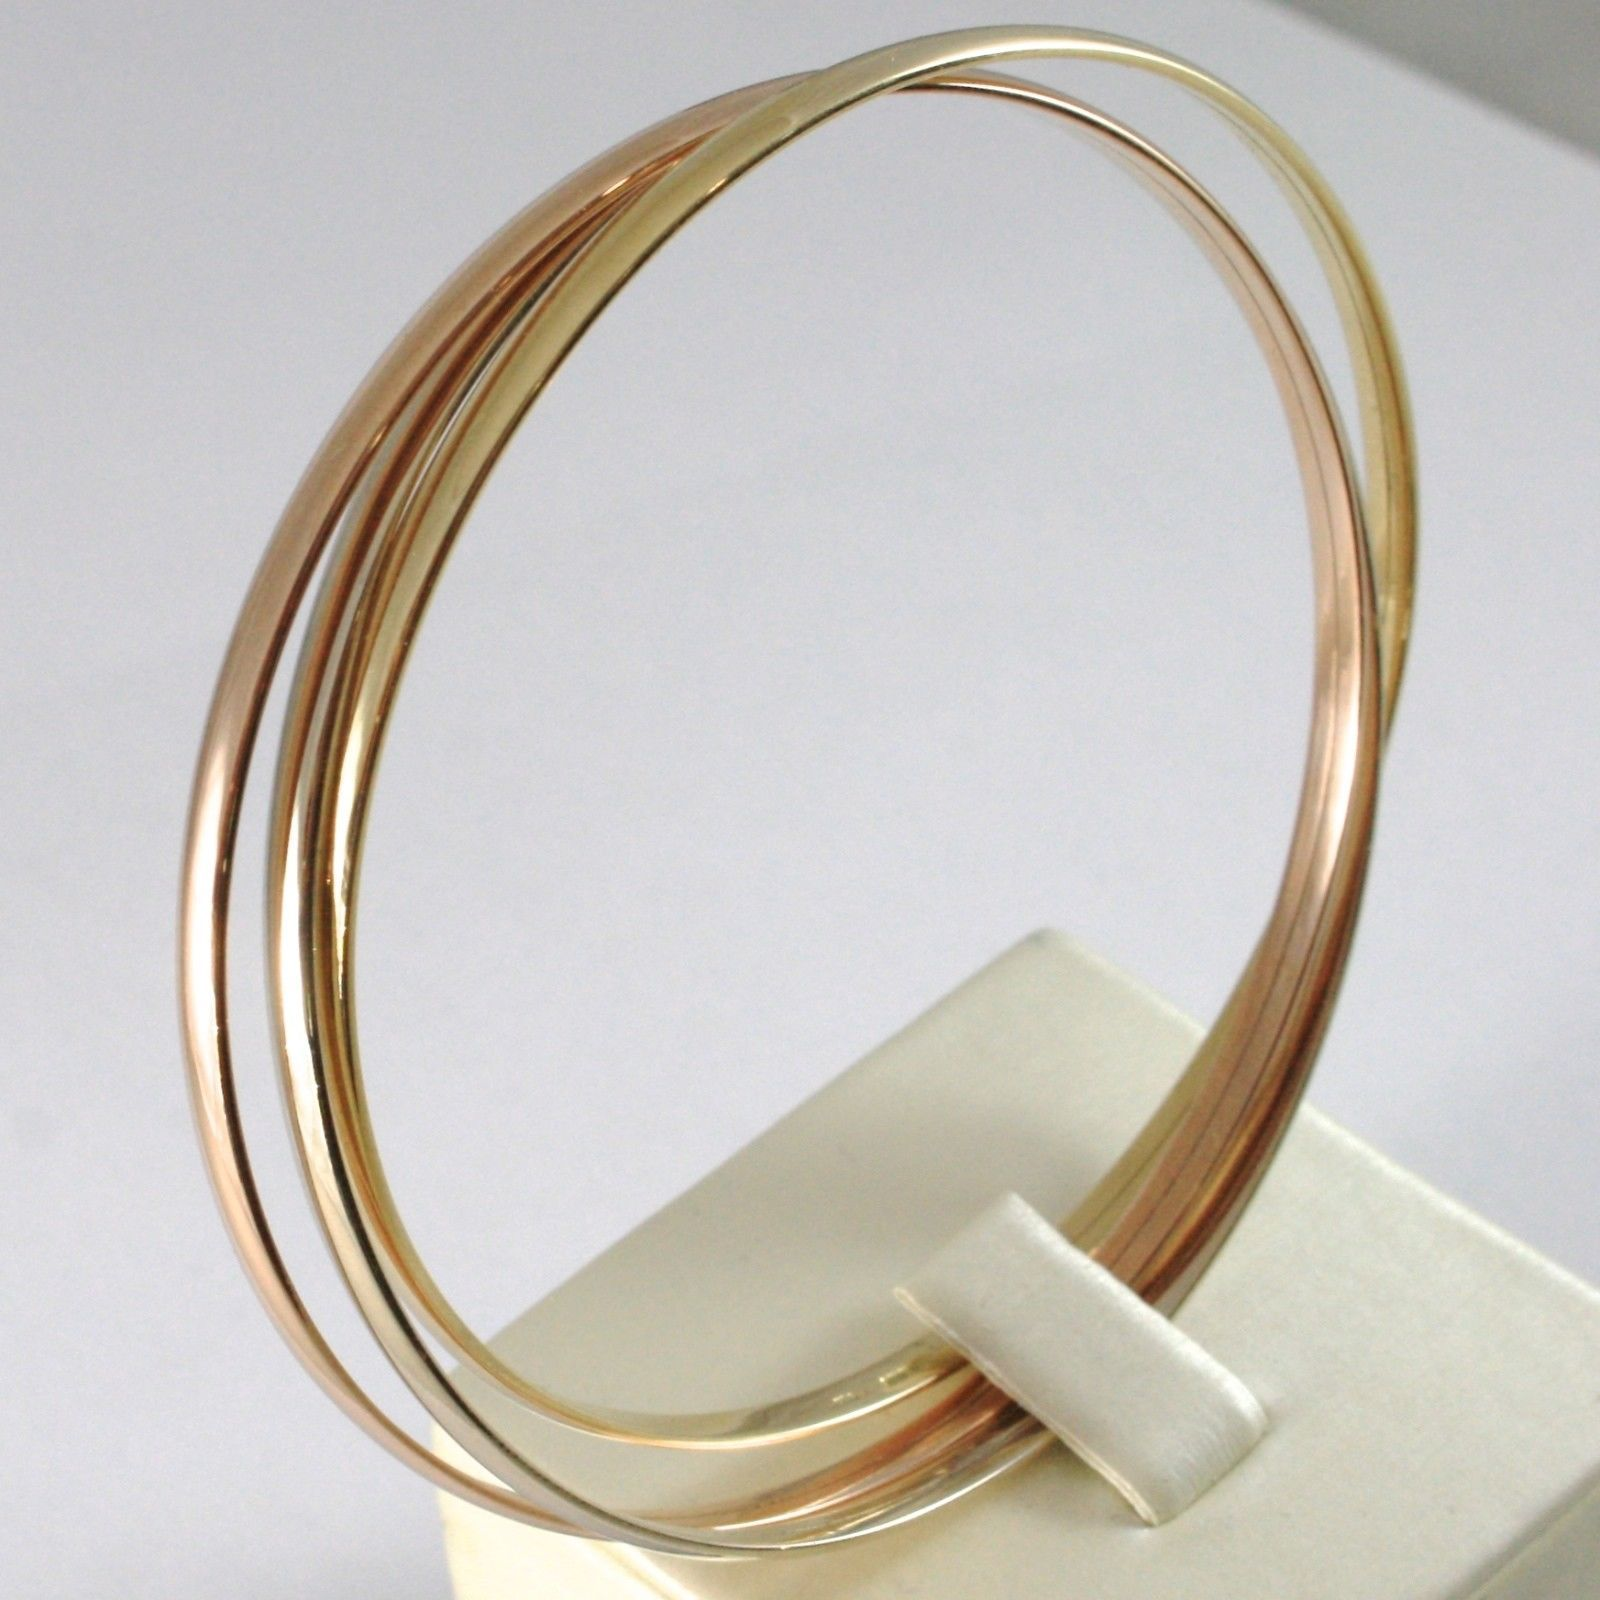 BRACELET YELLOW GOLD WHITE AND PINK 750 18K, TRIPLE, TRIS, ROD FLAT